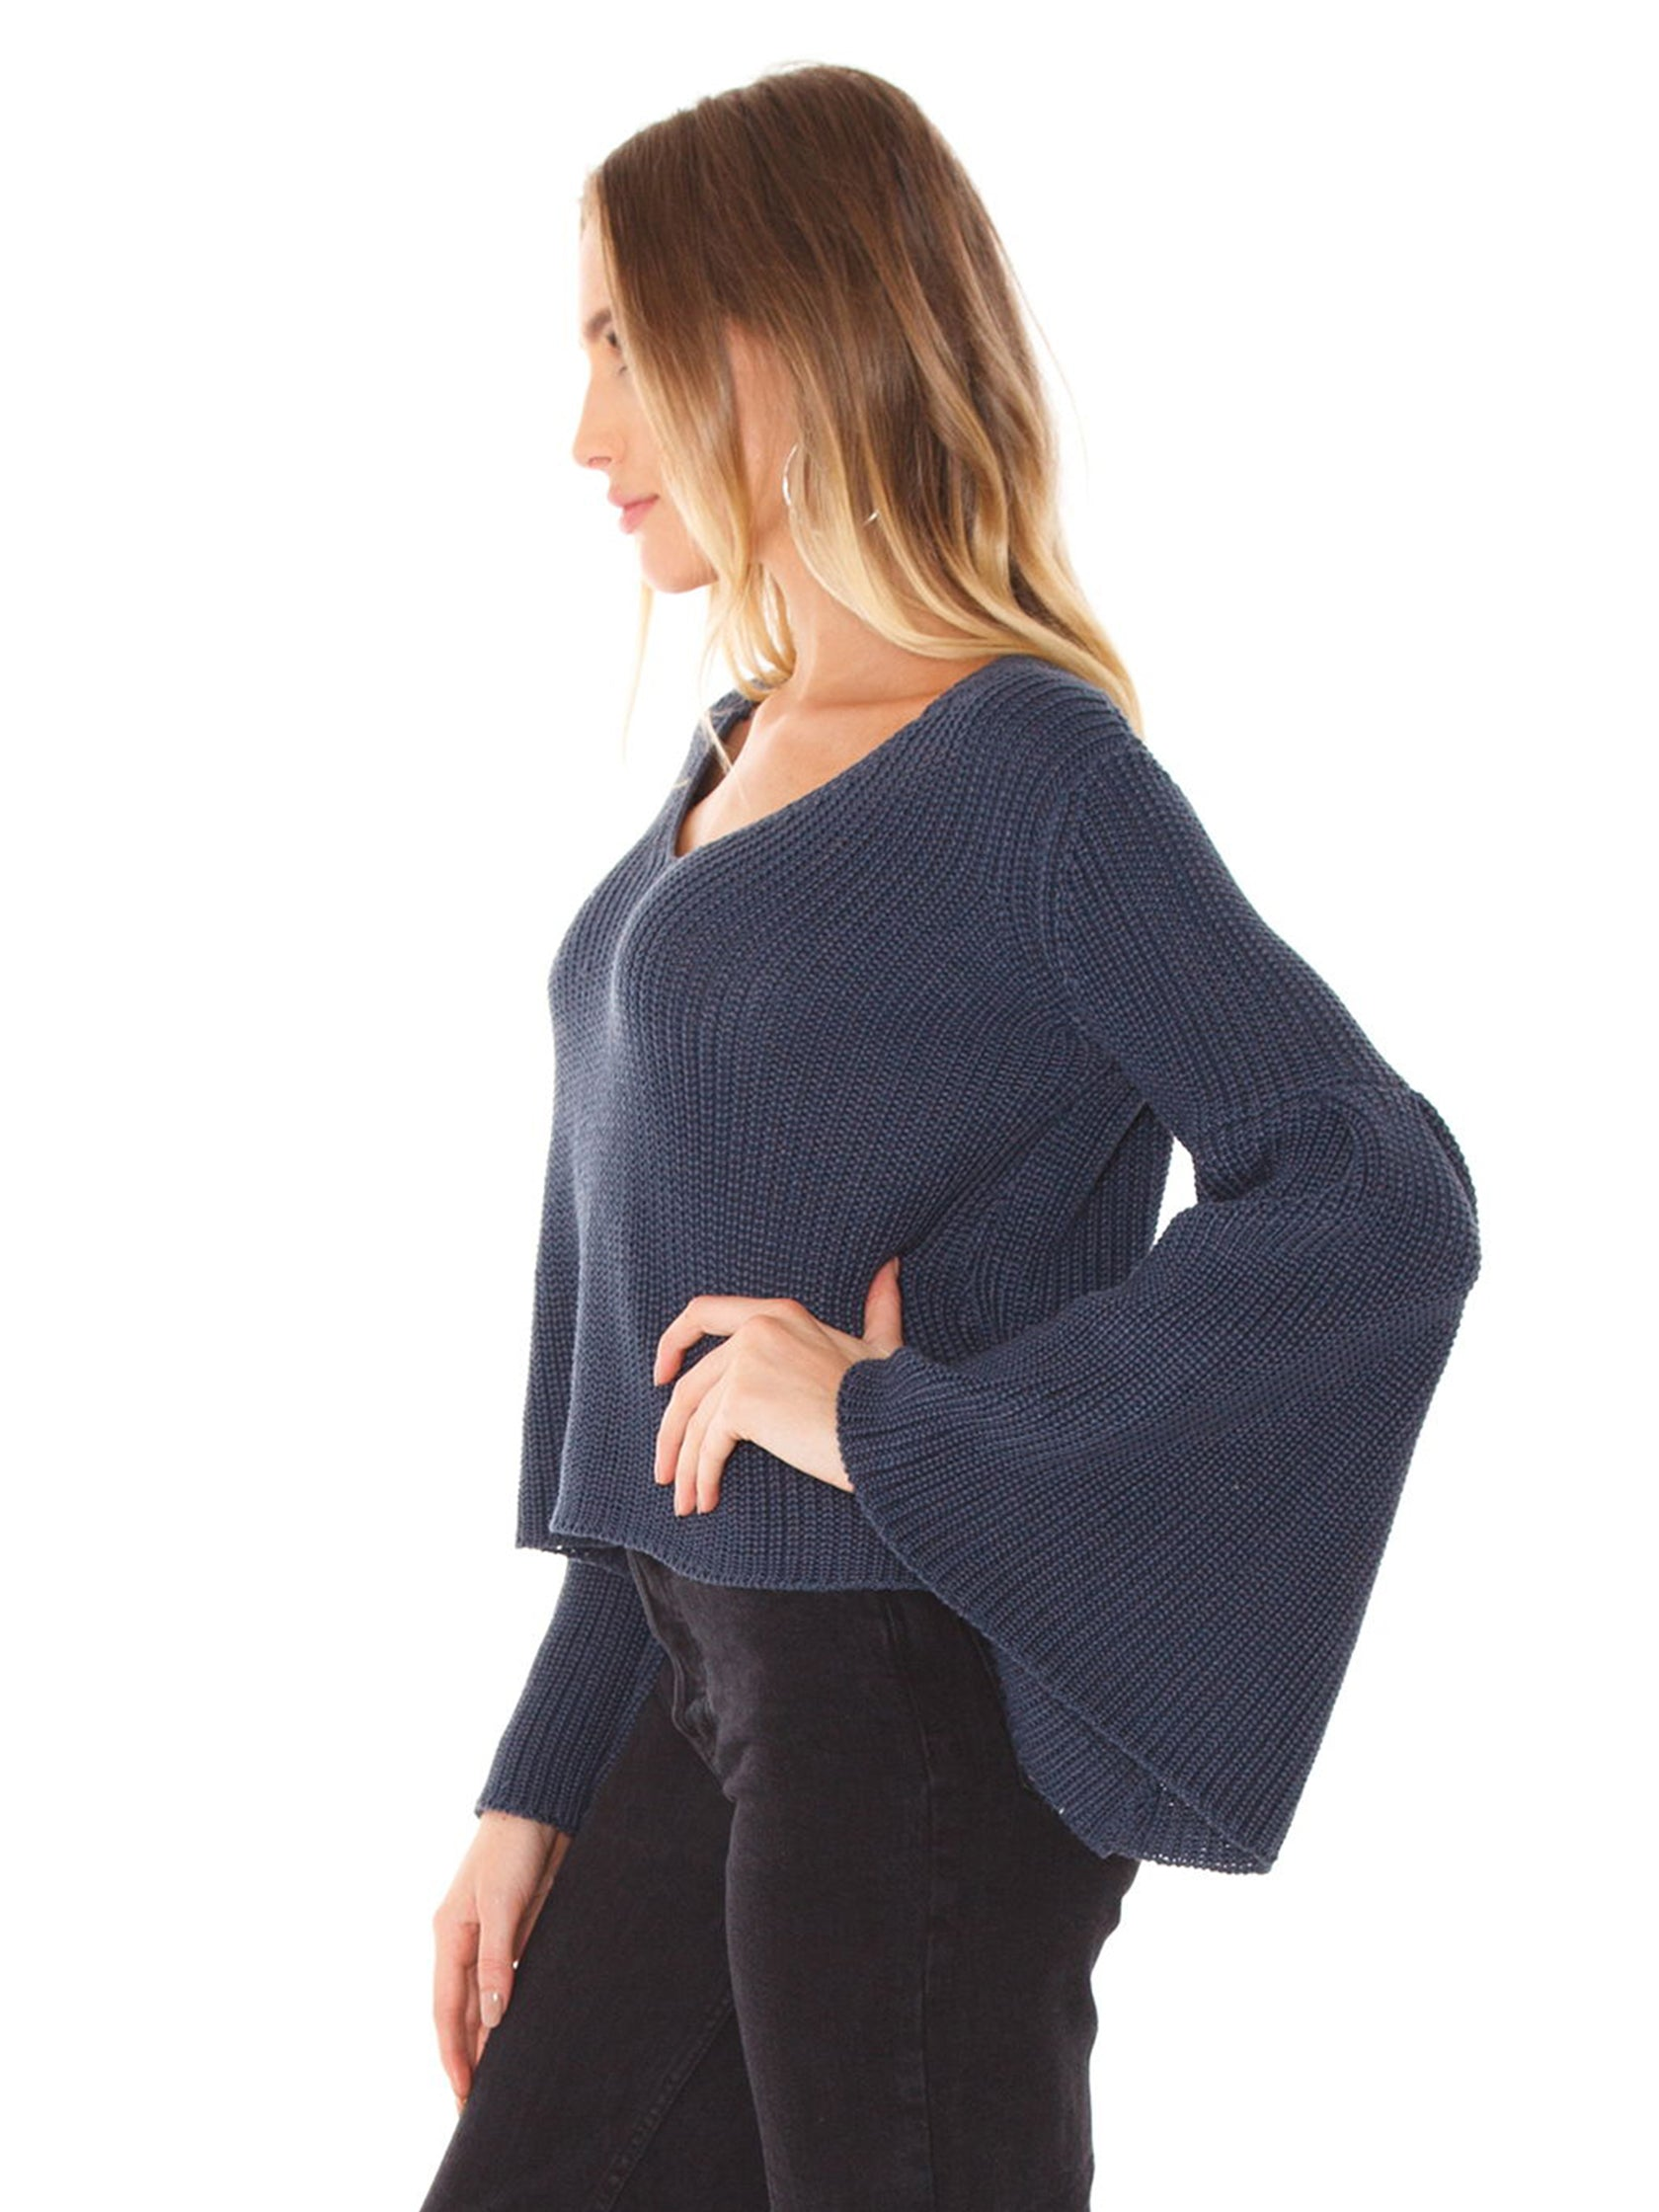 Women wearing a top rental from FashionPass called Flare Sweater